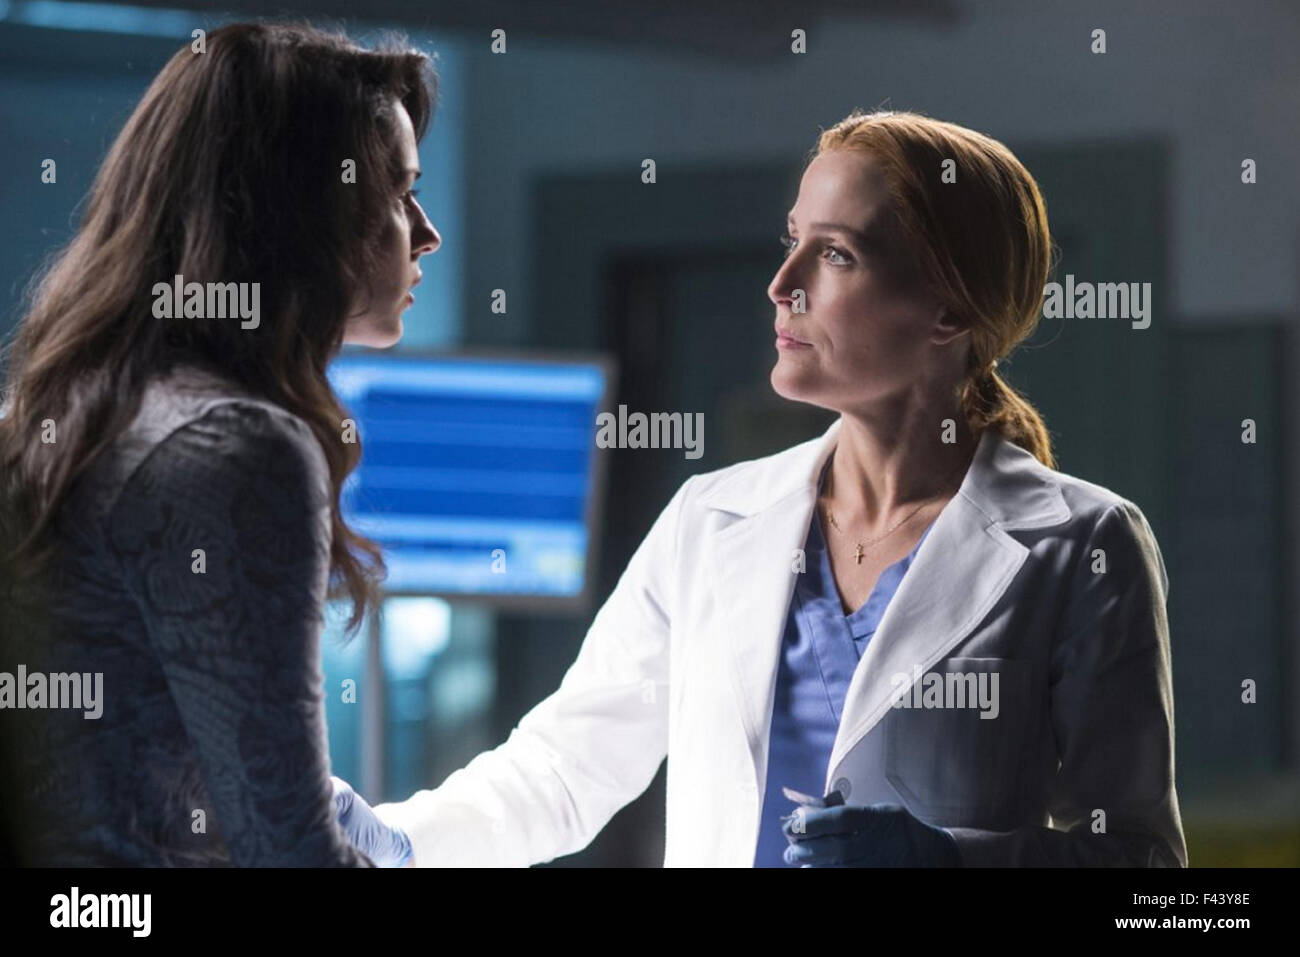 THE X-FILES - MY STRUGGLE 2016 Fox Broadcasting film with Gillian Anderson at right and Annet Mahendru - Stock Image